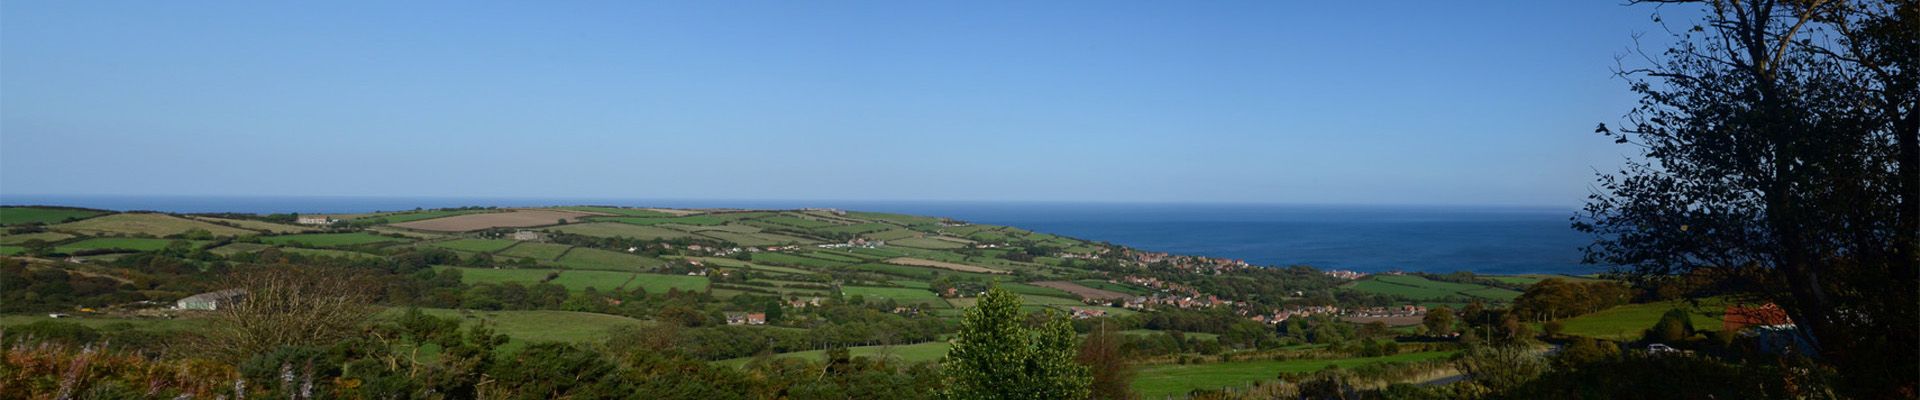 View from Sledgates to Robin Hoods Bay